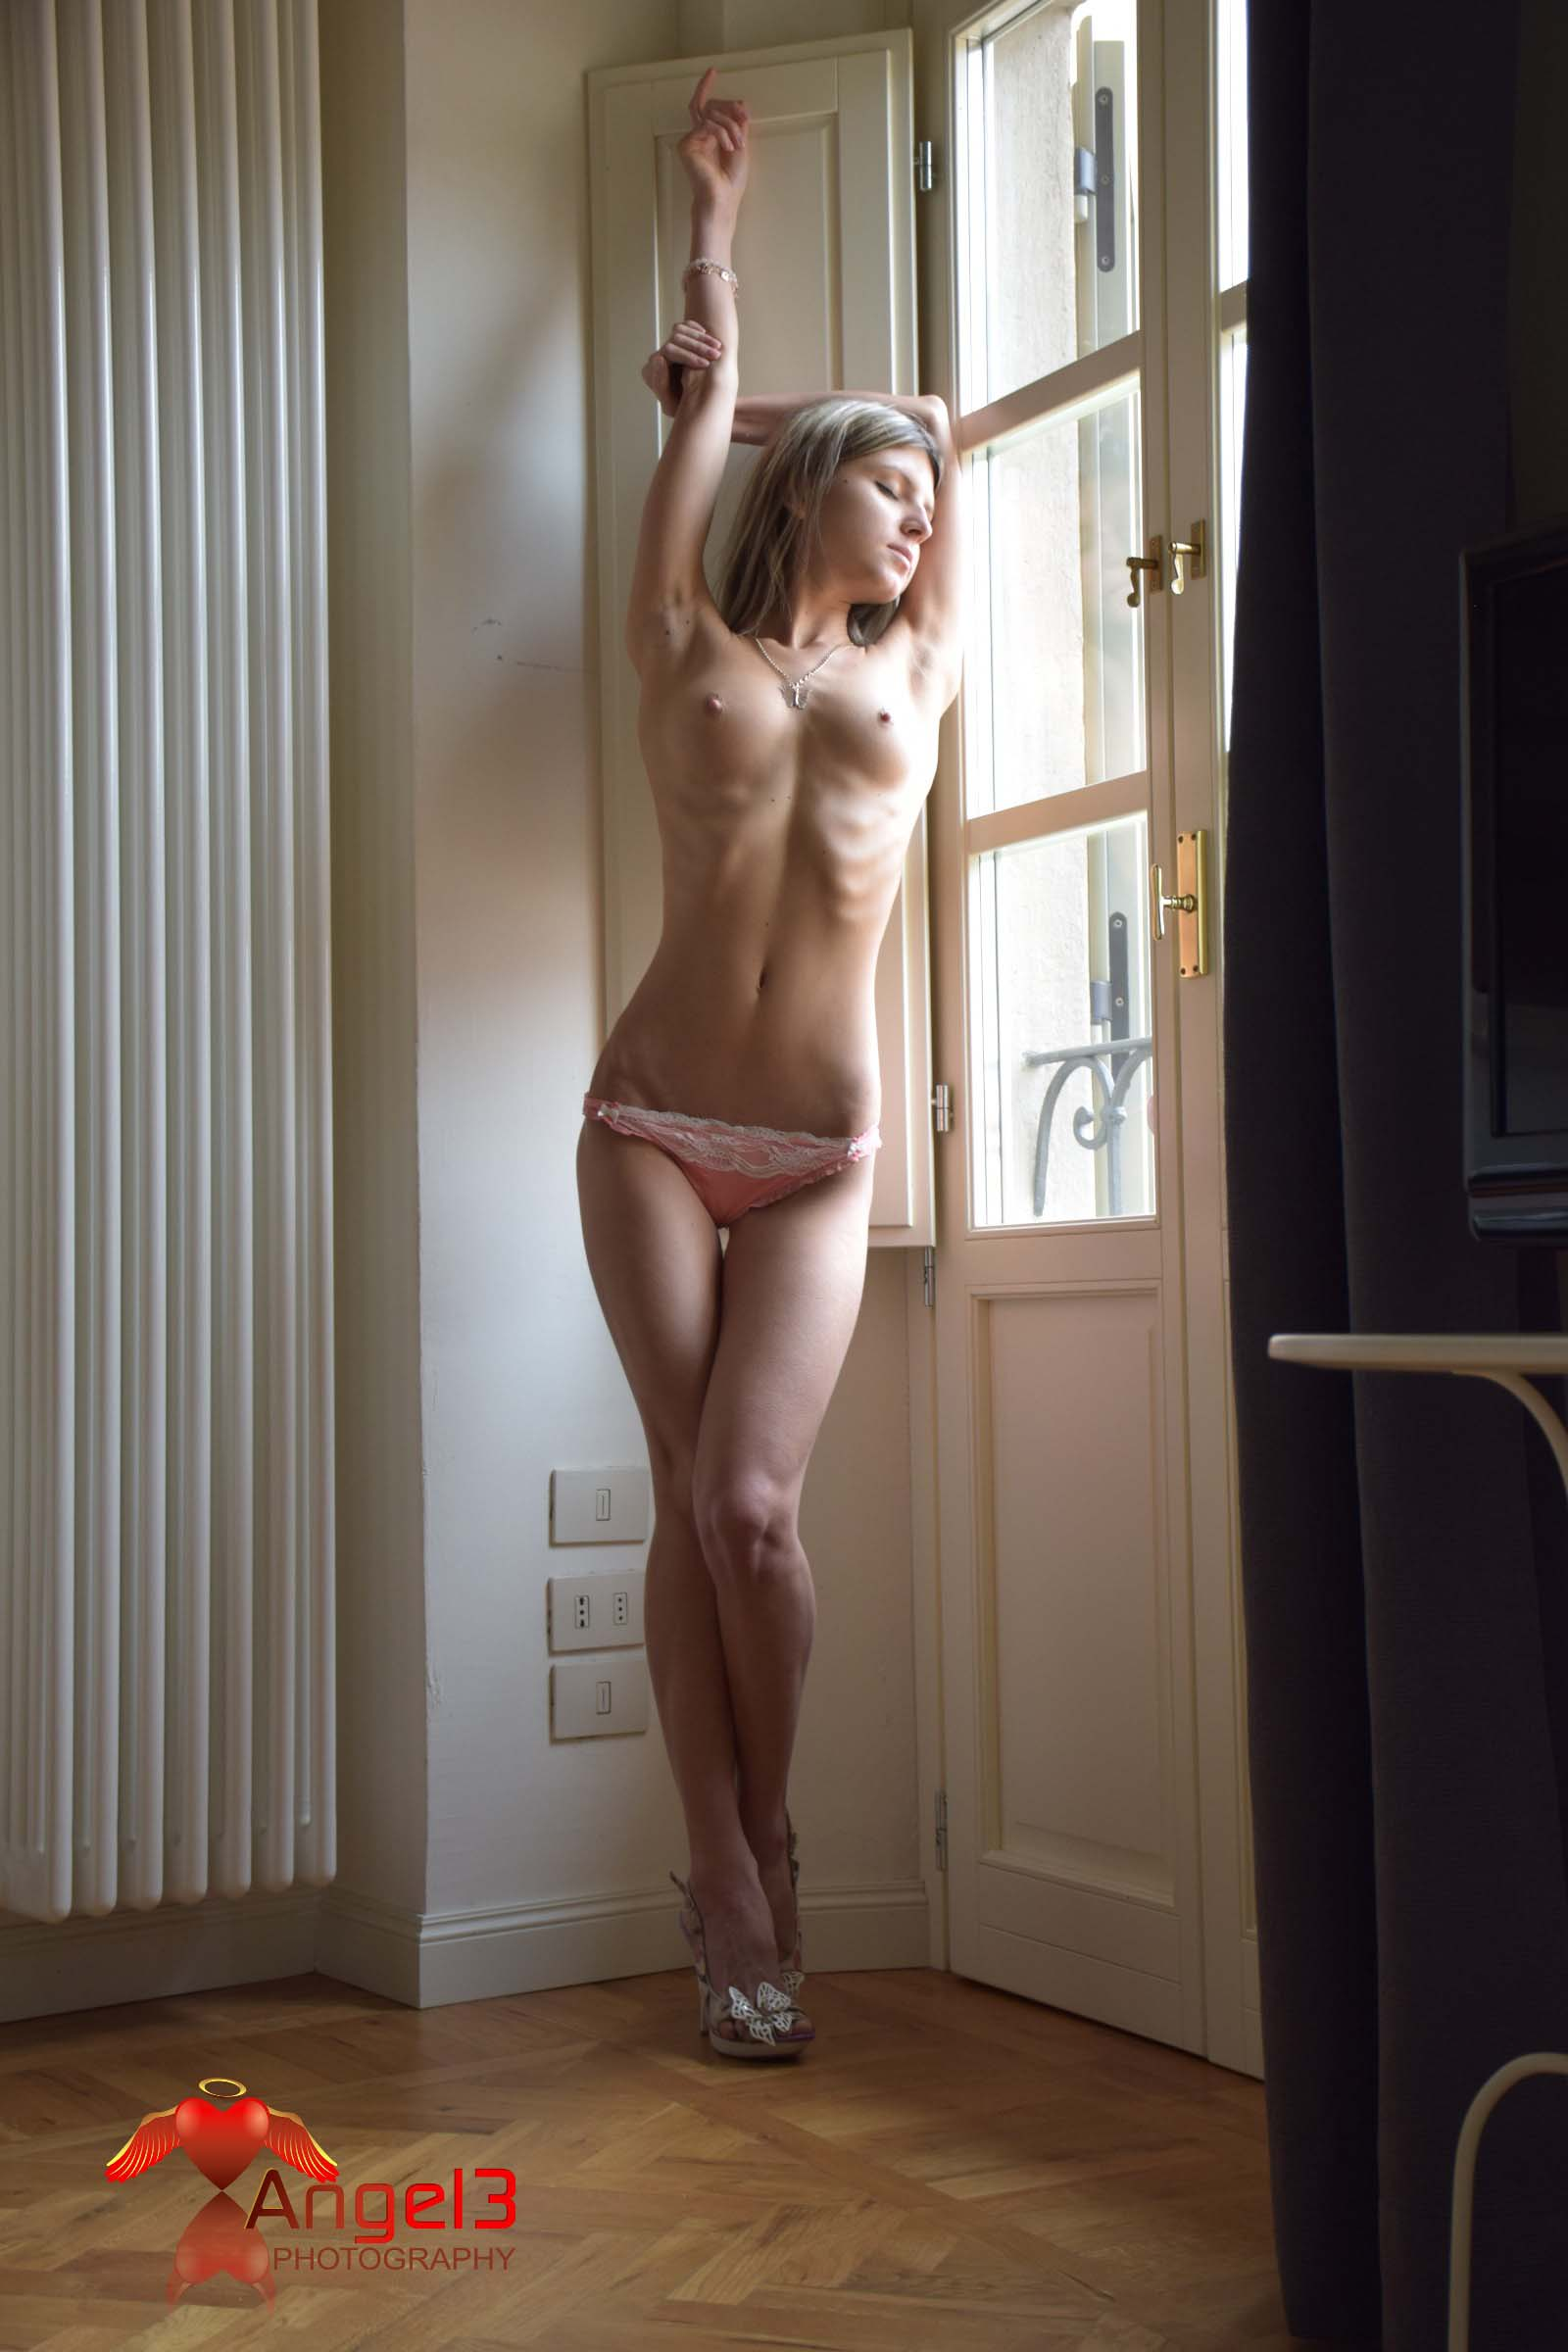 Gina Gerson Pink Lingerie  Angel3